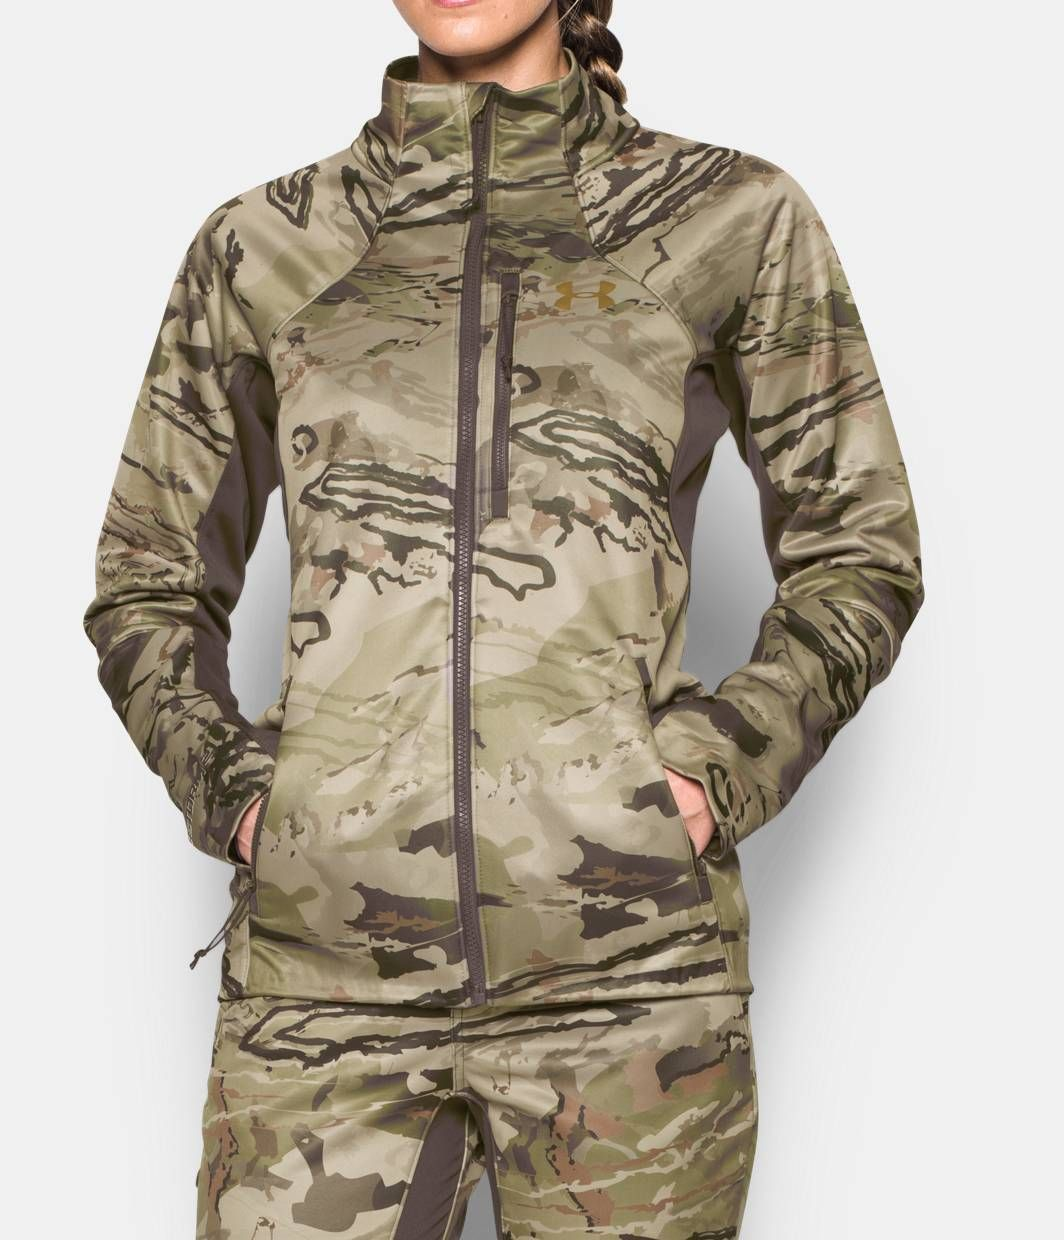 7dd76af92ba71 Women's UA Chase Jacket, RIDGE REAPER® BARREN | Hunter Gatherer ...